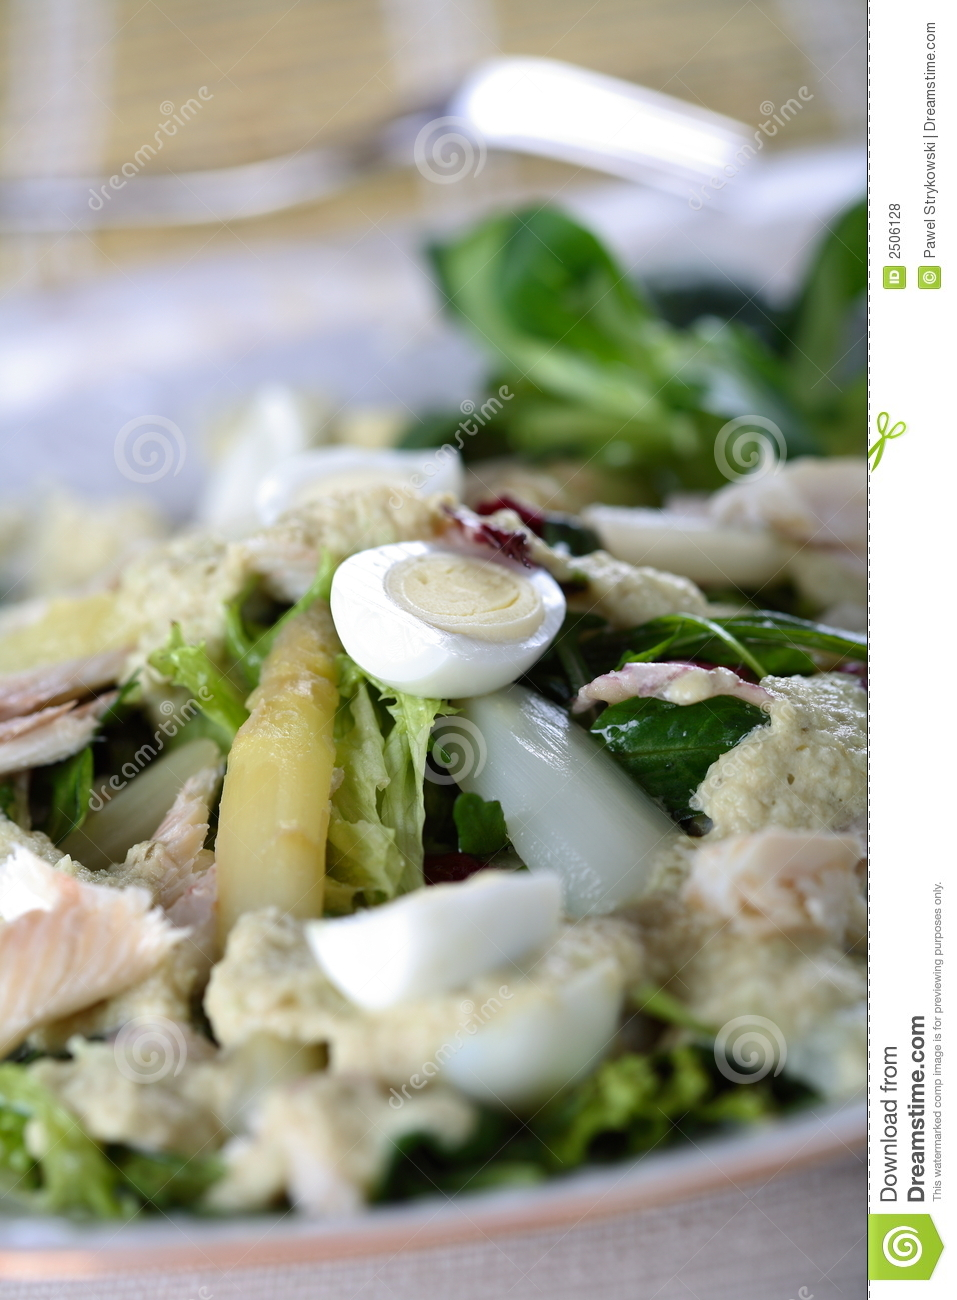 Salad with fish and asparagus royalty free stock photos for Fish and asparagus